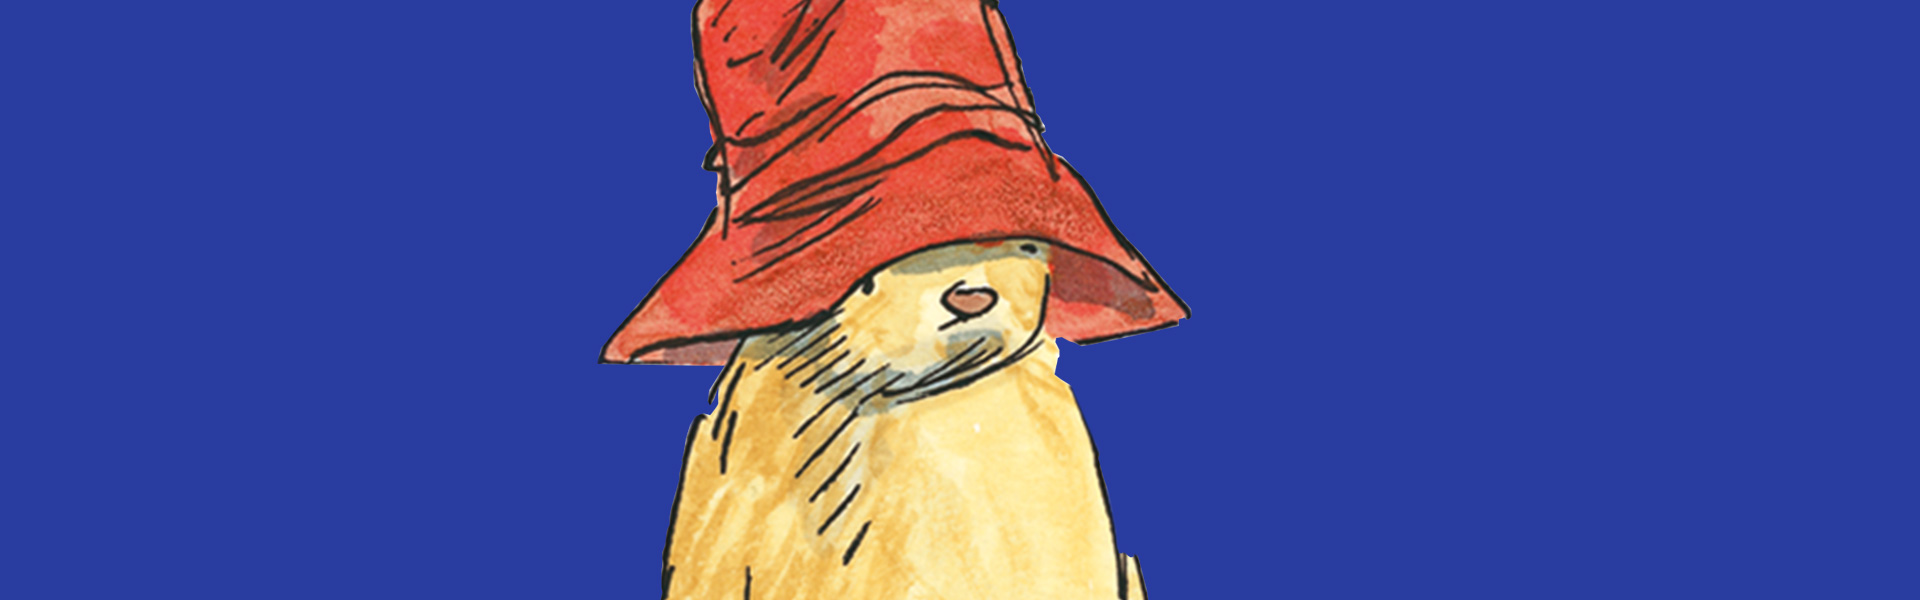 10 Things You Didn't Know About Paddington Bear